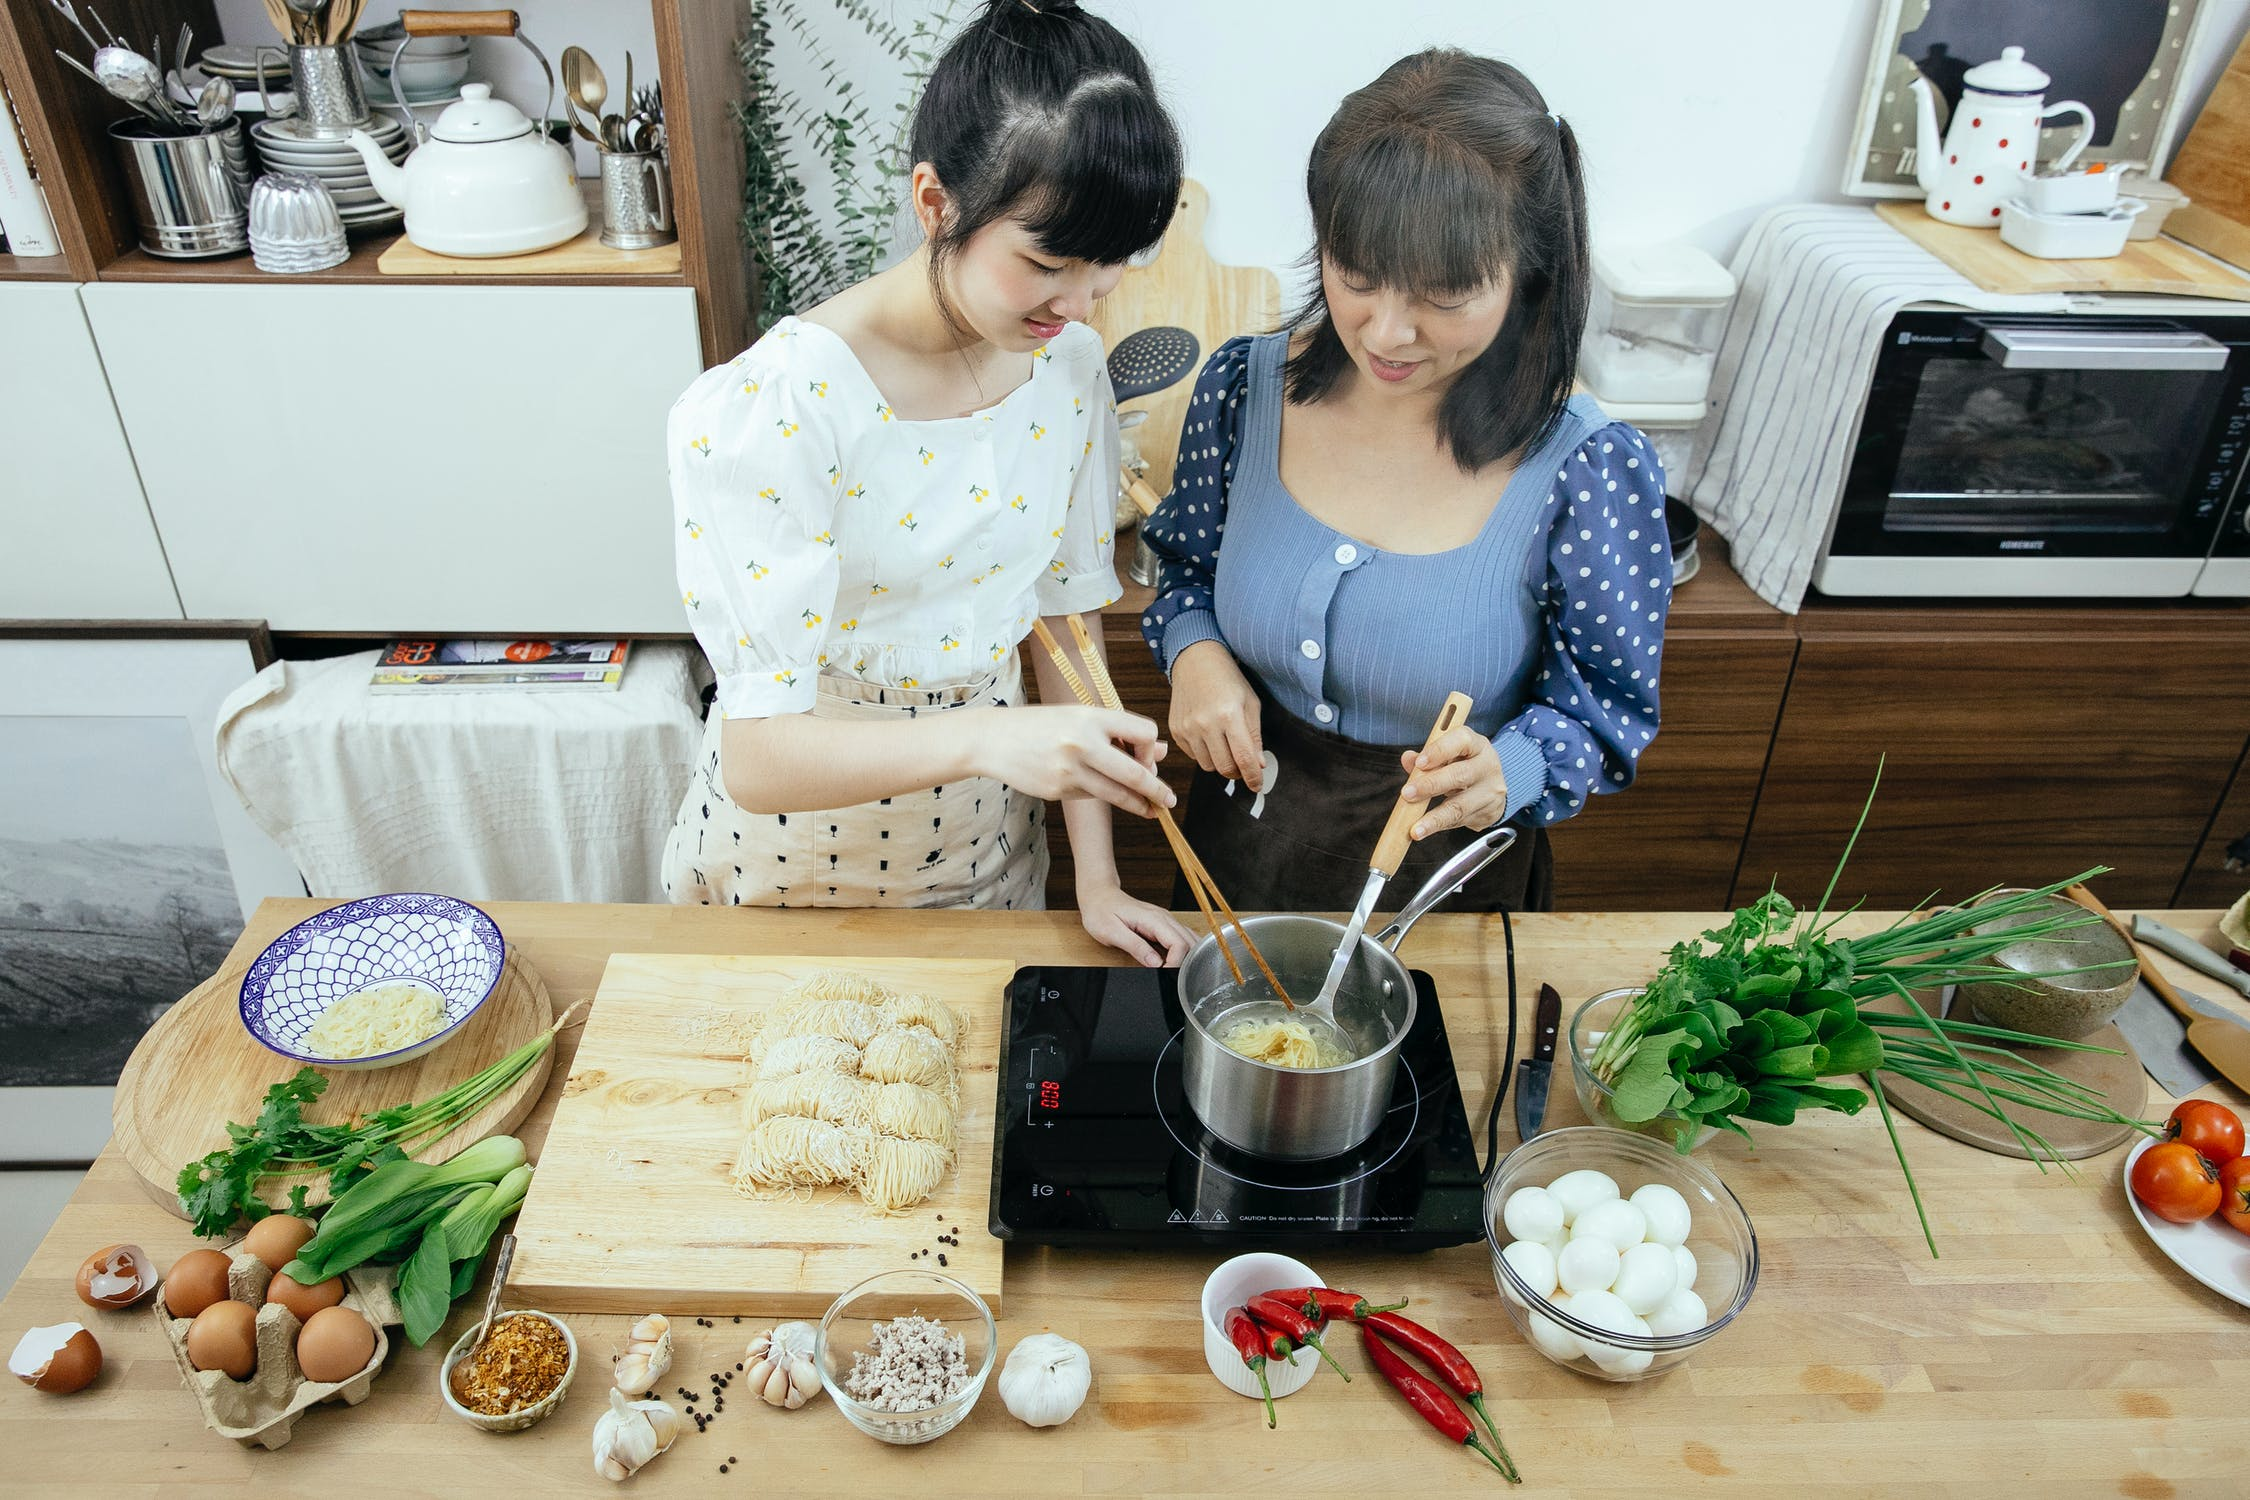 Two women improvising recipe in the kitchen